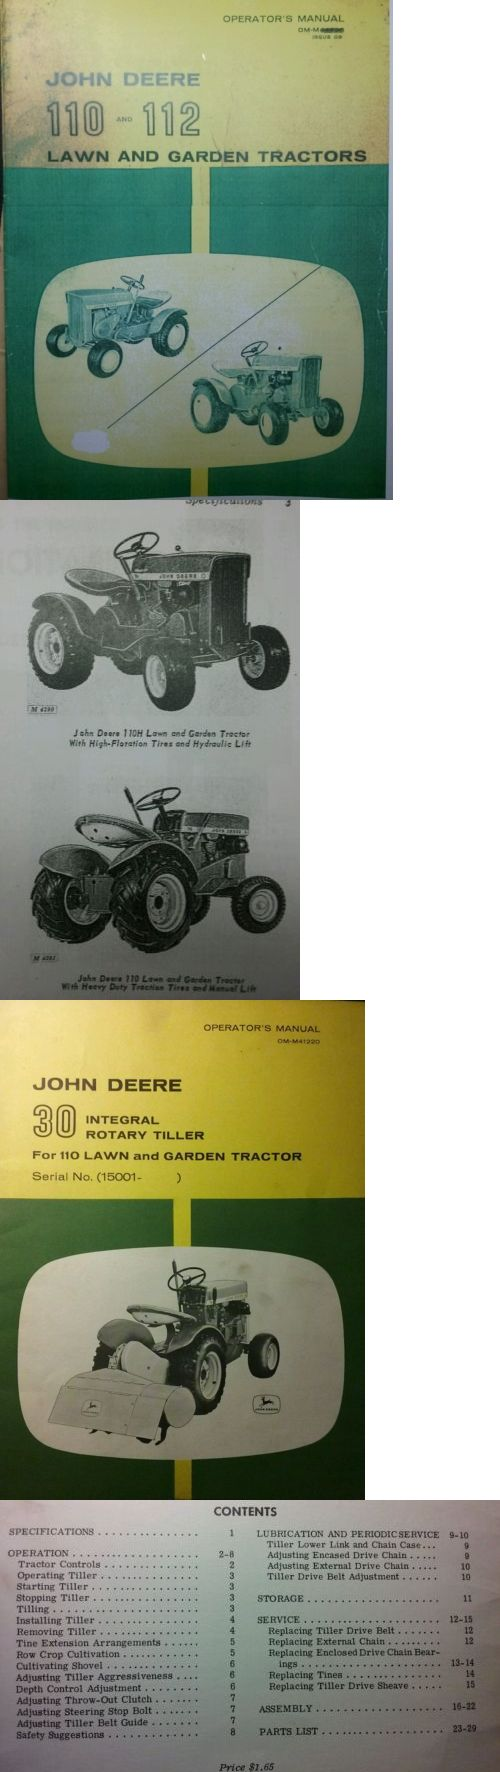 Manuals And Guides 42229: John Deere 110 112 Round Fender Garden Tractor  And 30 Tiller